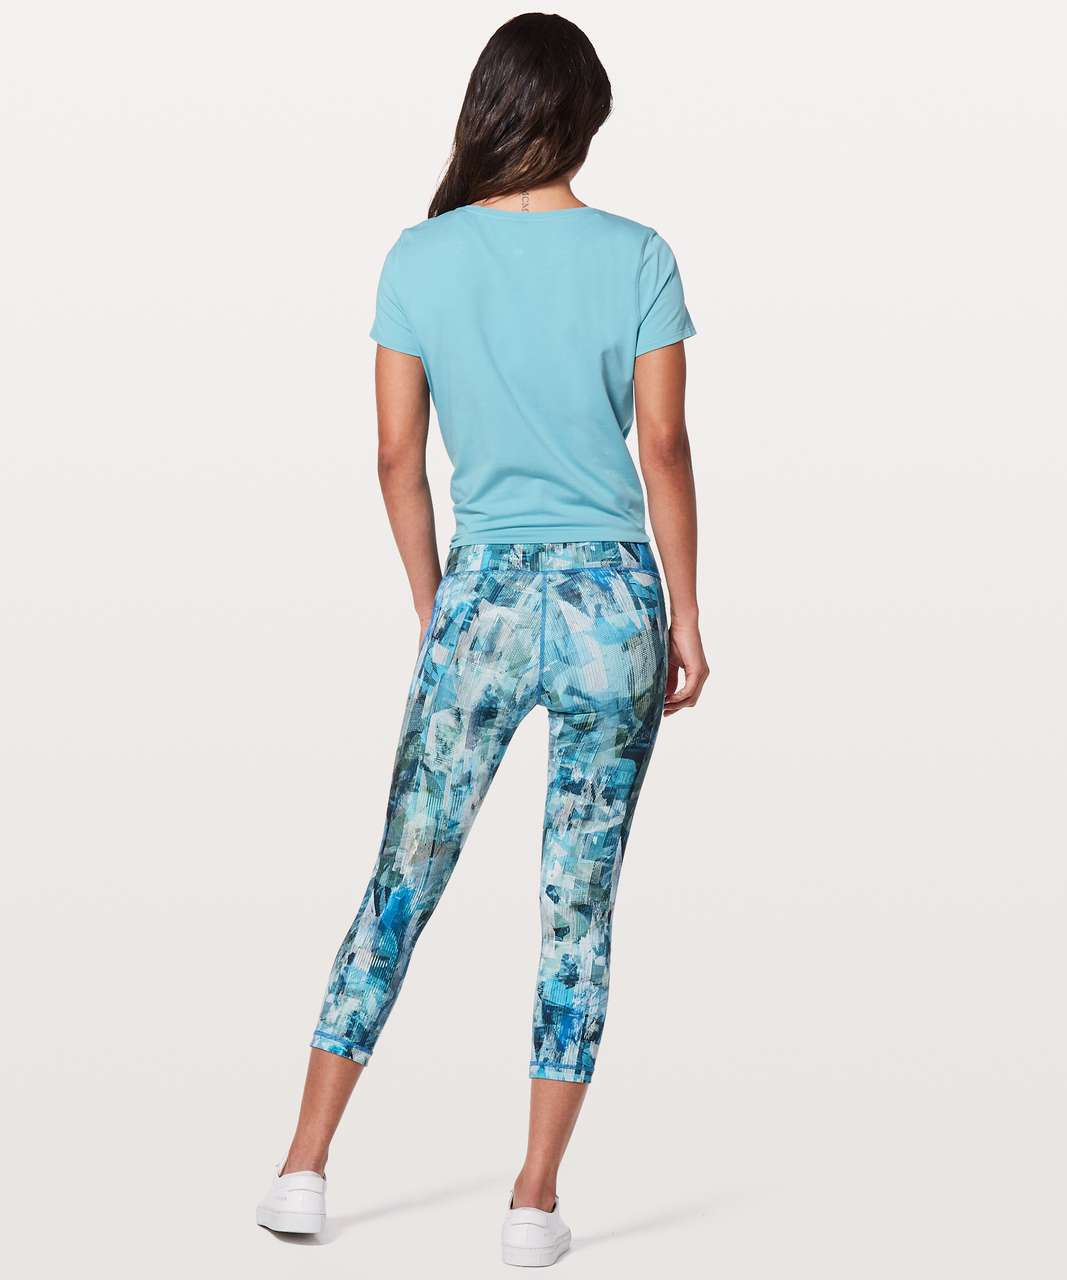 "Lululemon Wunder Under Crop (Hi-Rise) 21"" - Sun Dazed Multi Blue"